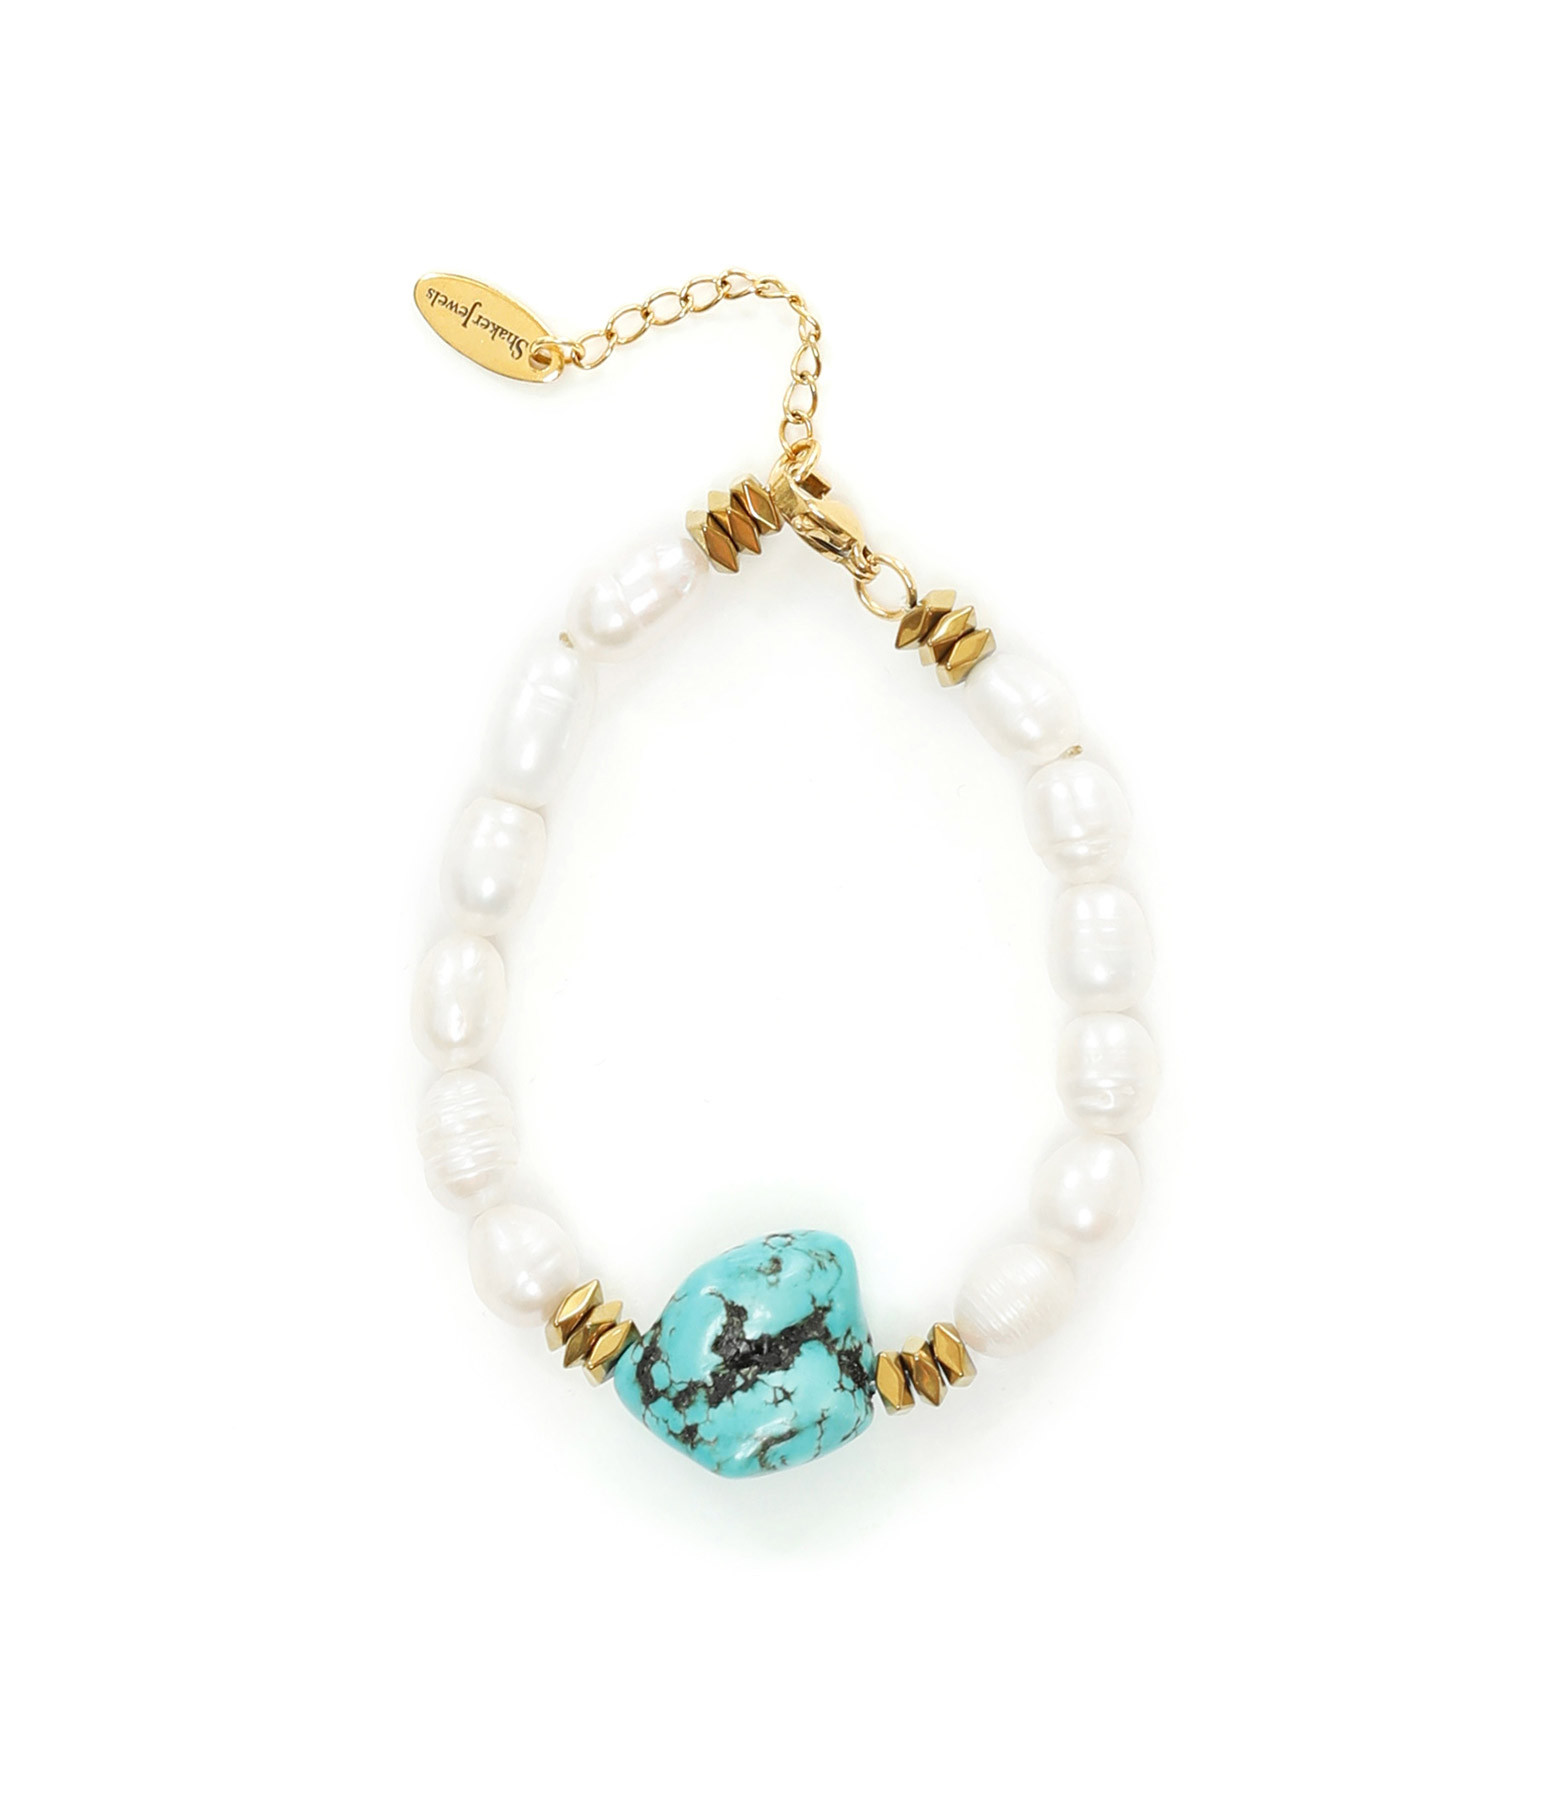 SHAKER JEWELS - Bracelet Perles Turquoise Plaqué Or